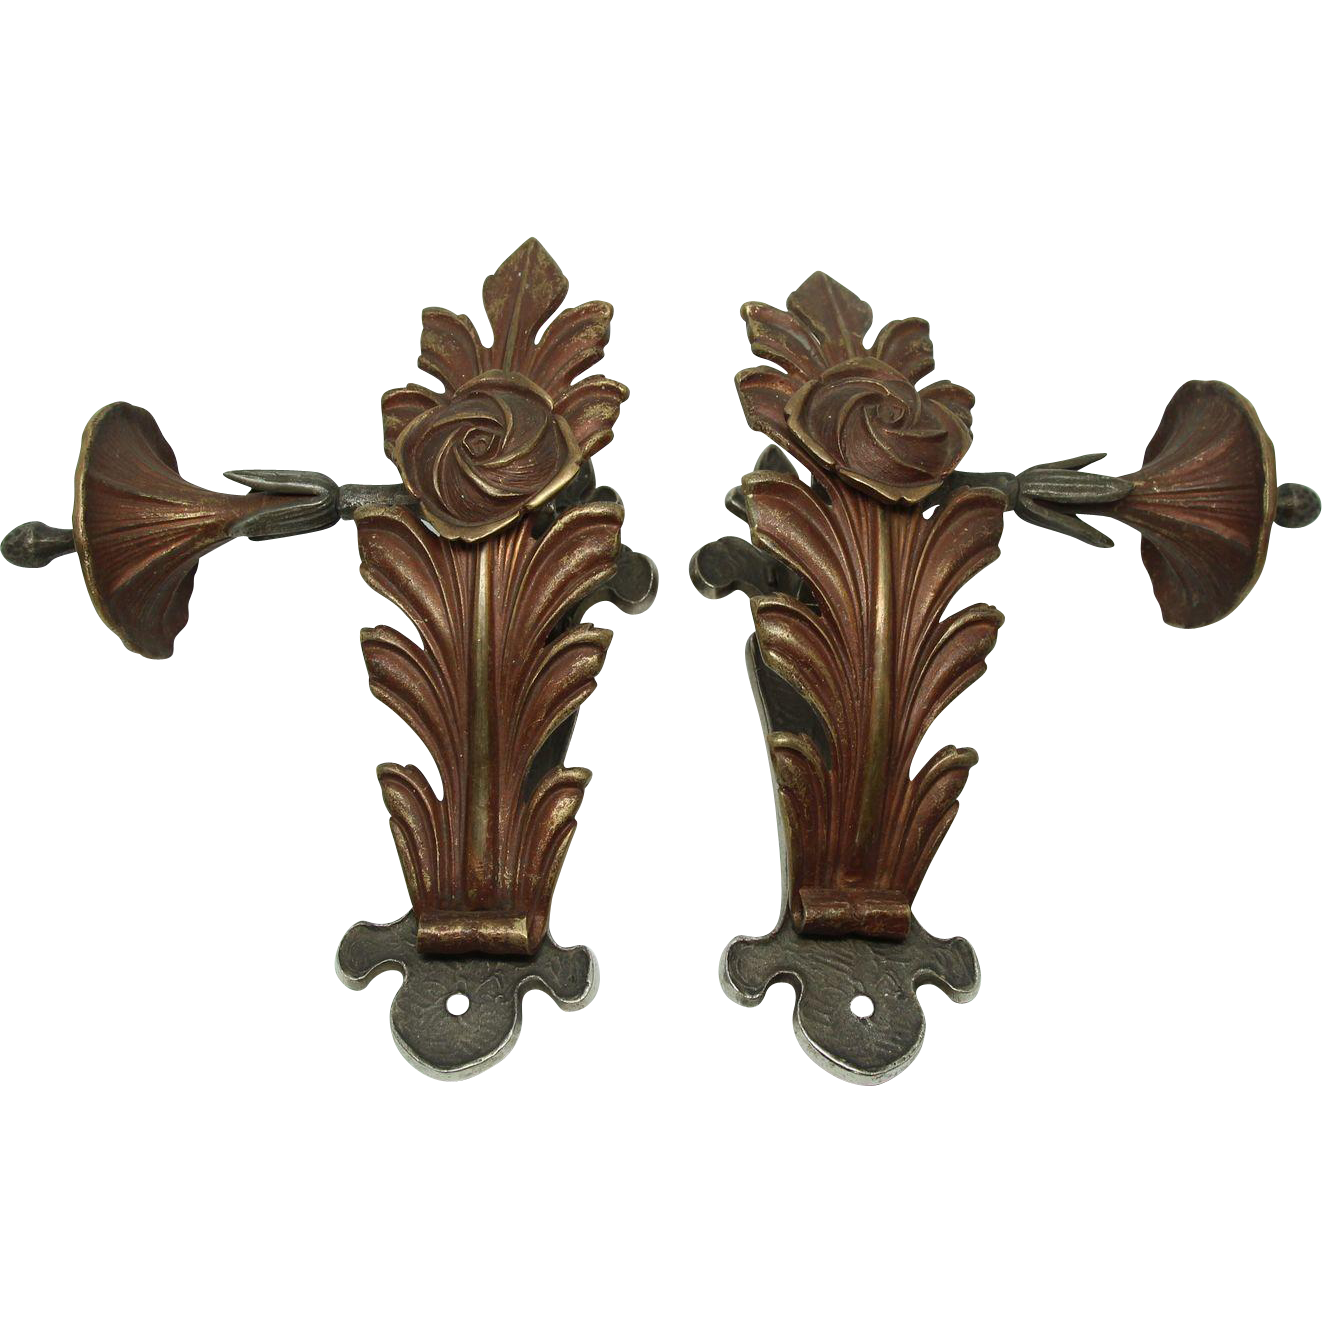 Pair of floral brass curtain tie backs with nickel washed plate